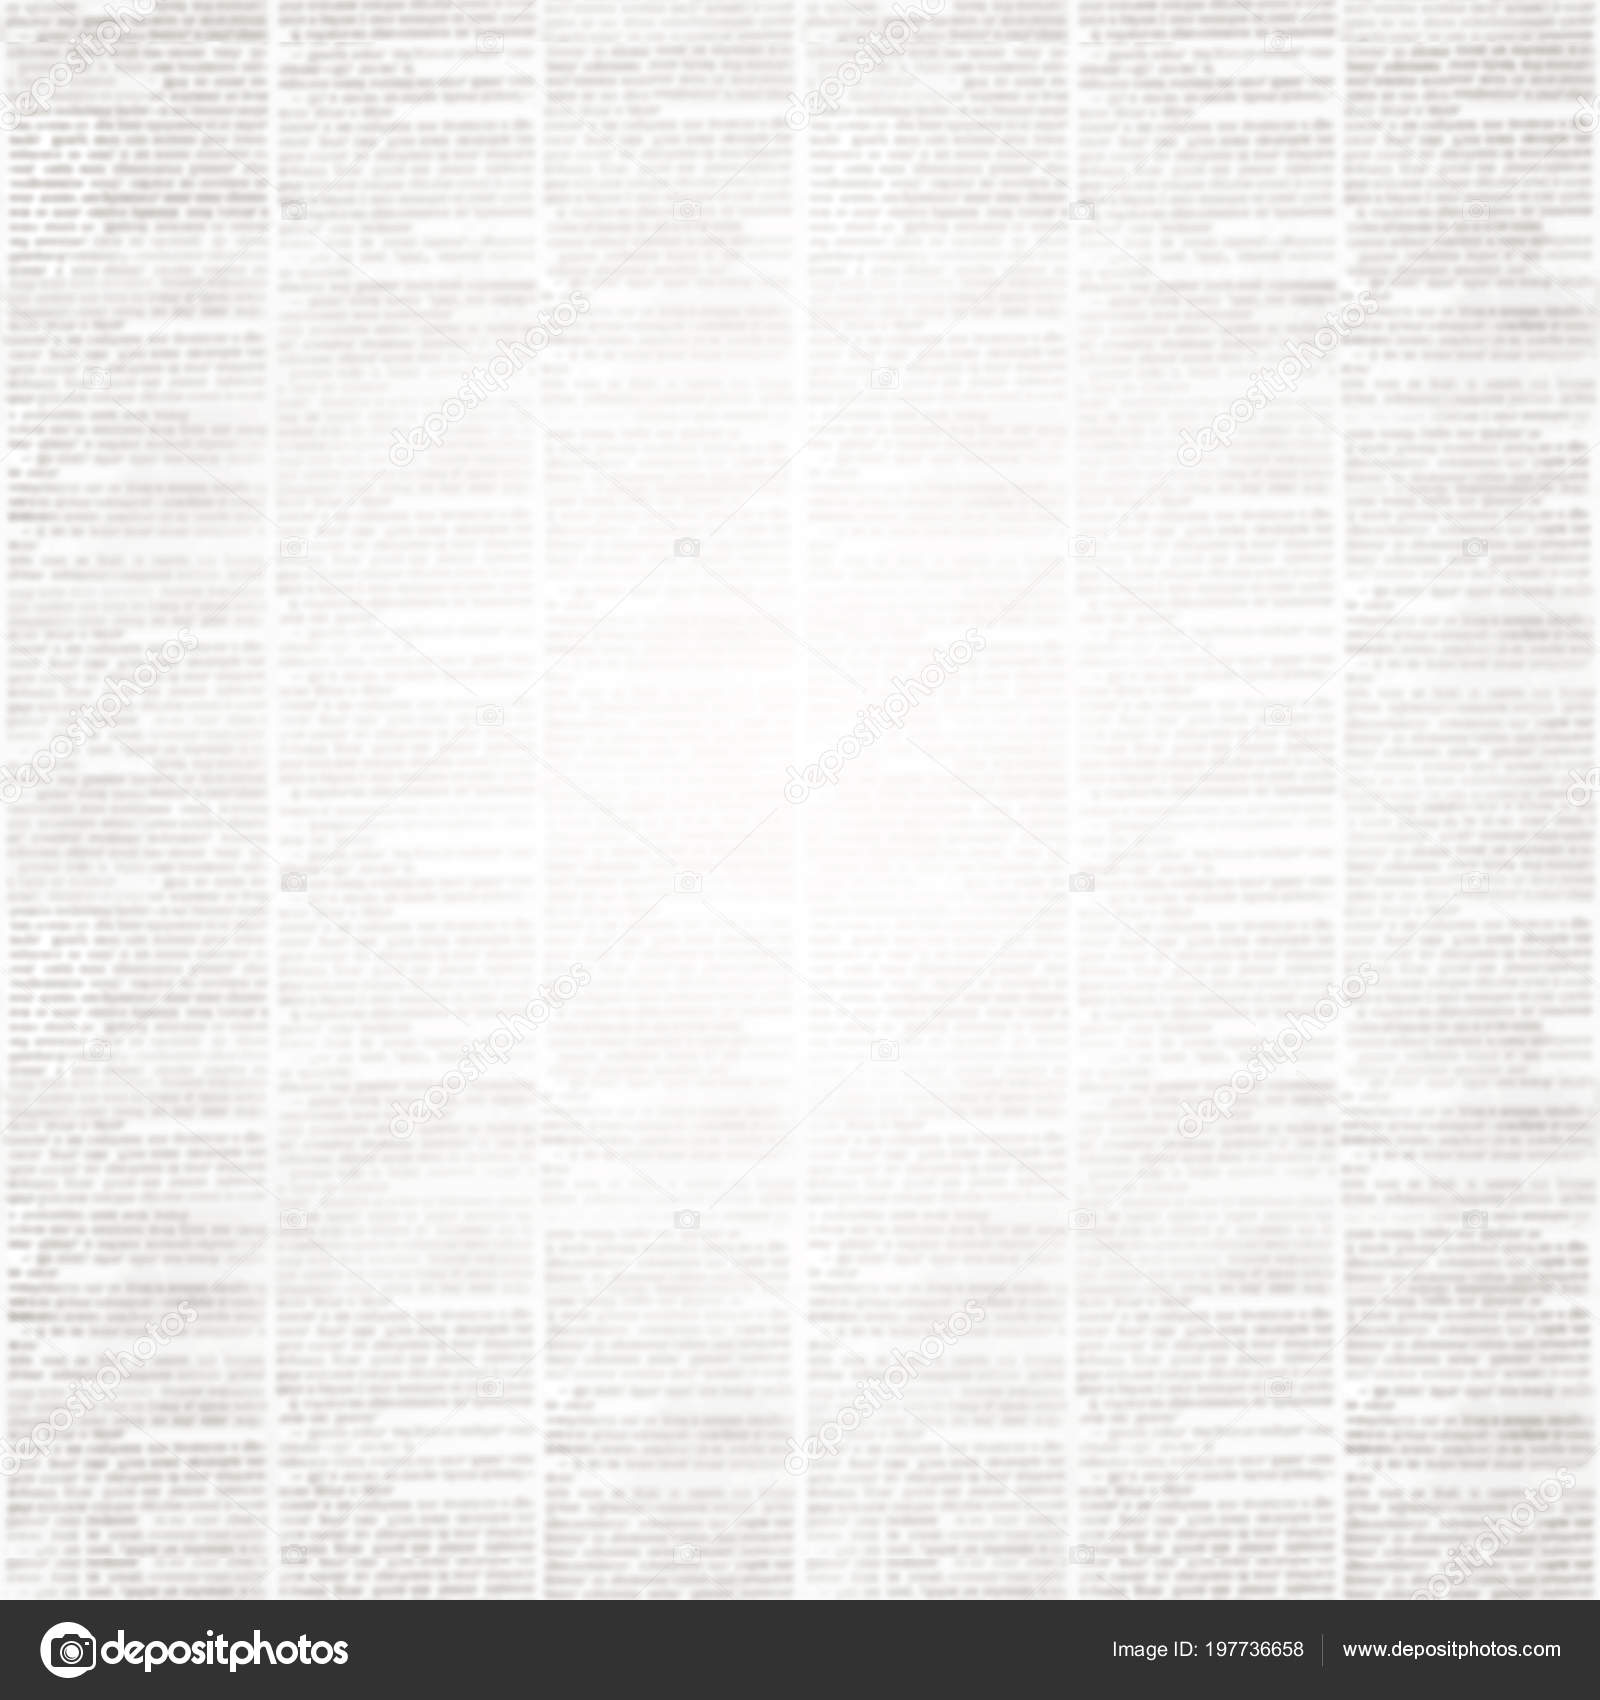 newspaper paper background space text old grunge unreadable vintage